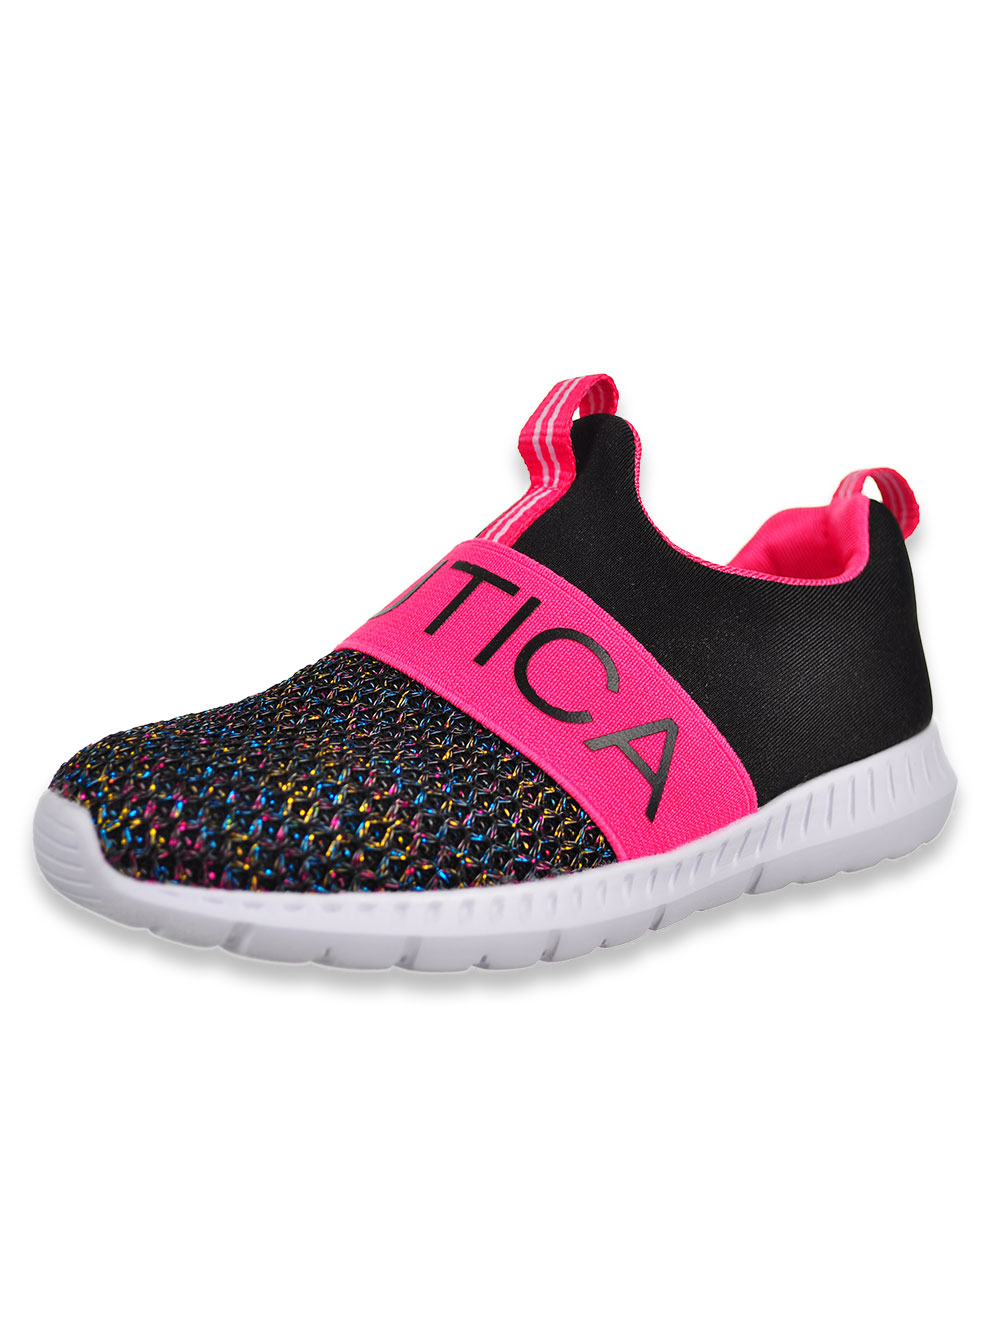 Girls Multicolor Sneakers